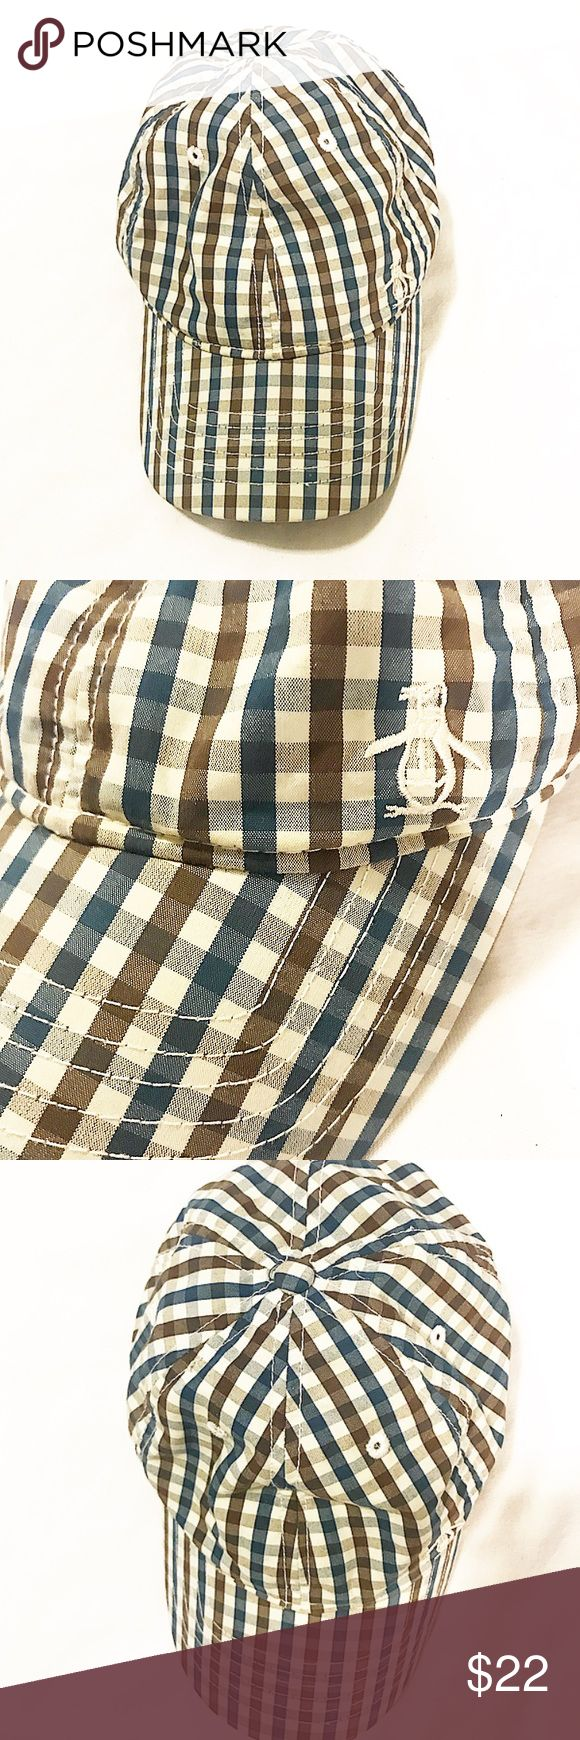 Penguin brand brown and blue plaid cap Penguin brand brown and blue plaid adjustable cap, understated penguin logo on front.  Pre-owned, worn once. Original Penguin Accessories Hats